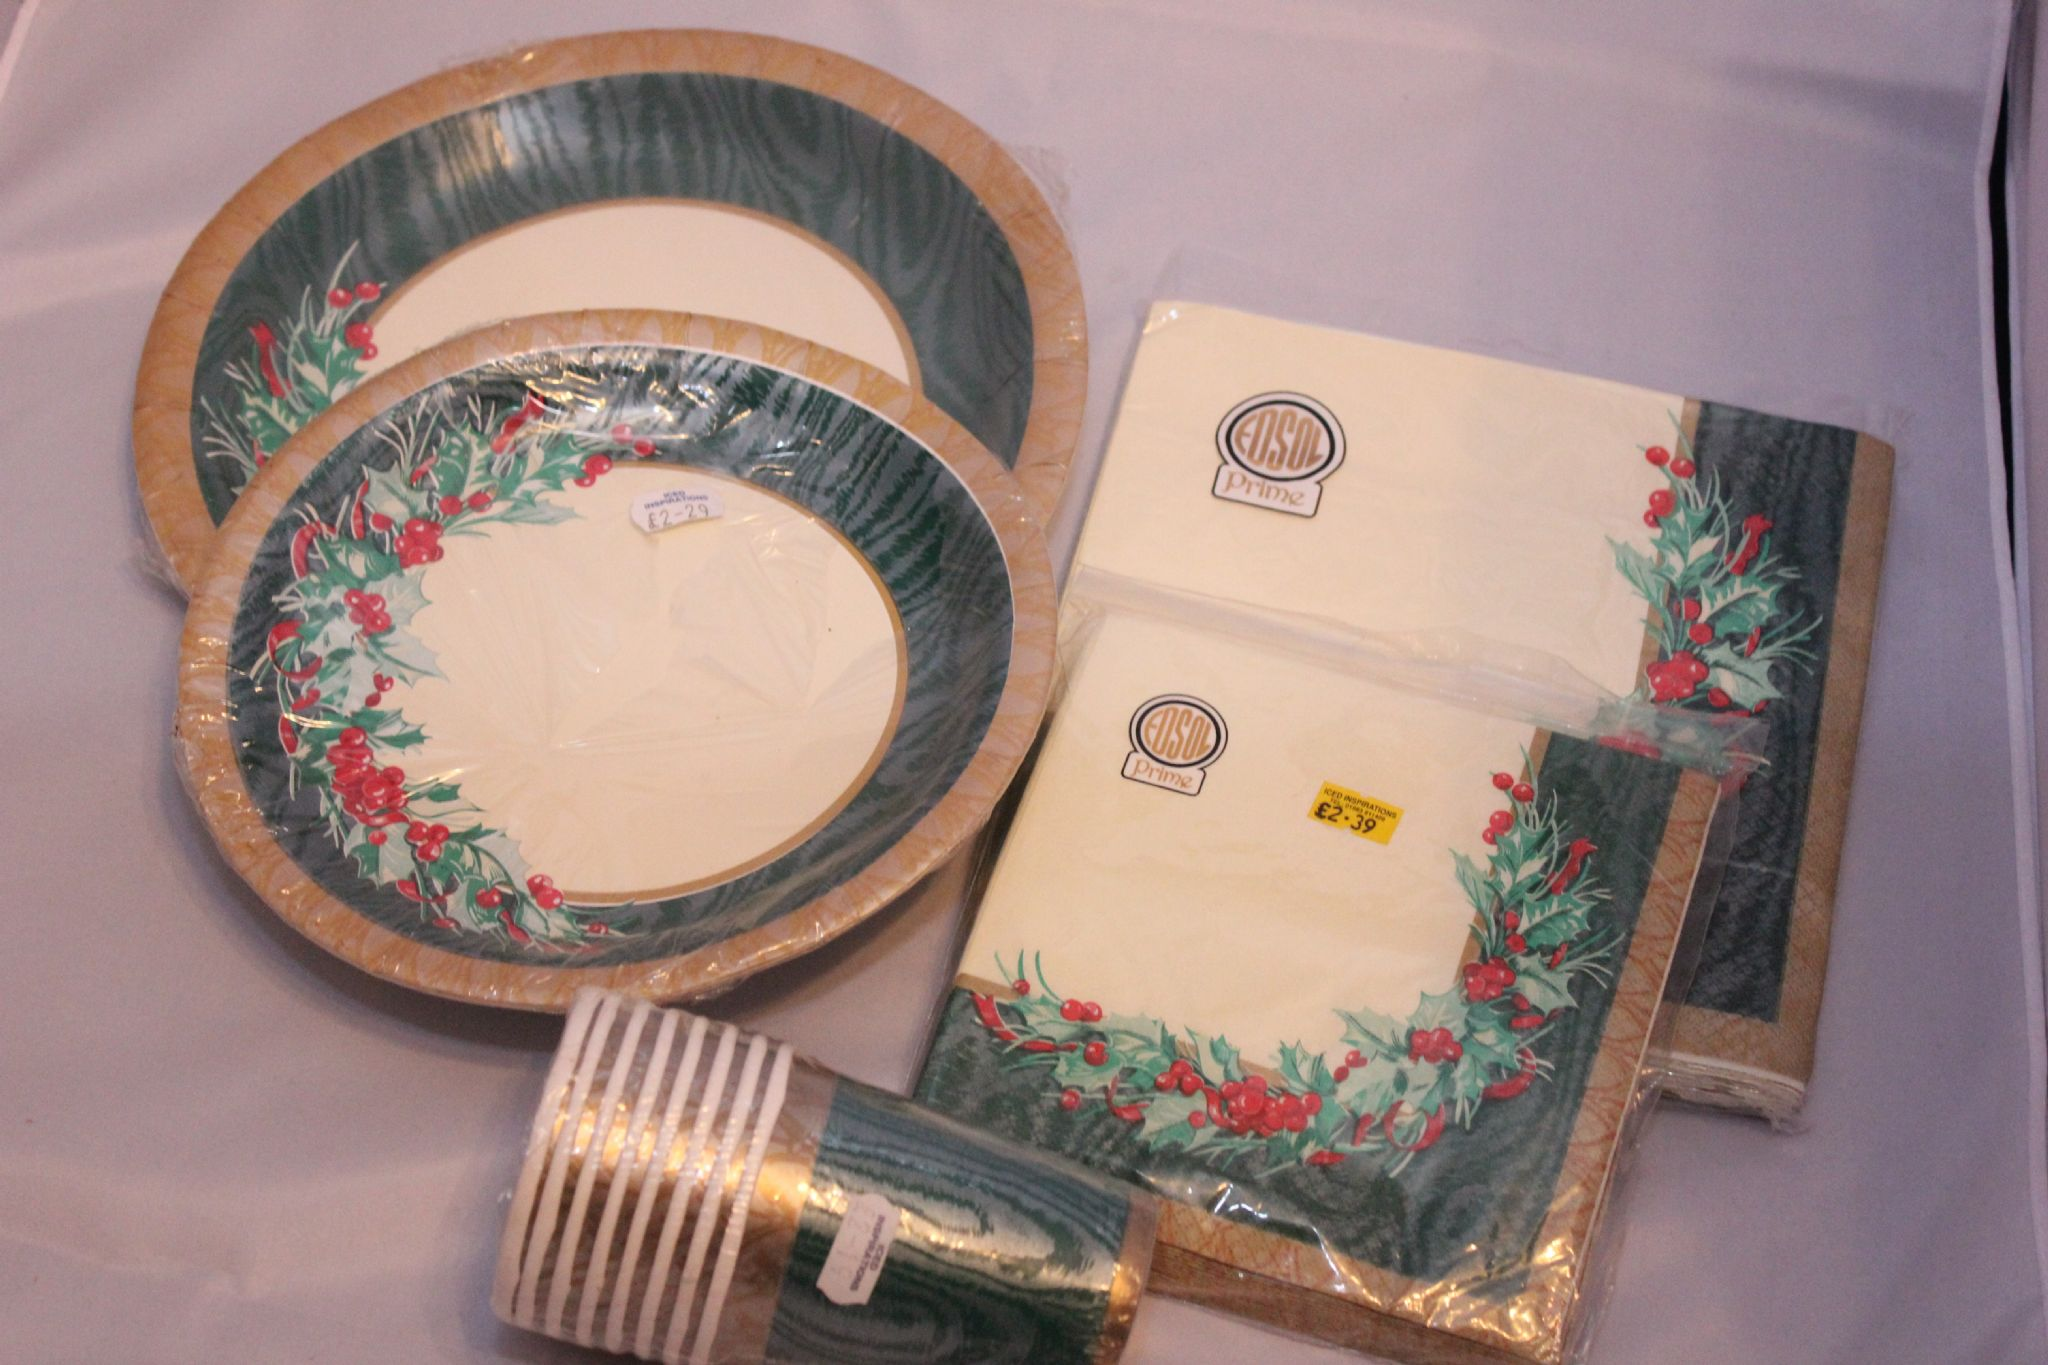 & Christmas Tableware Set Cream with Gold Edge Holly \u0026 Berries